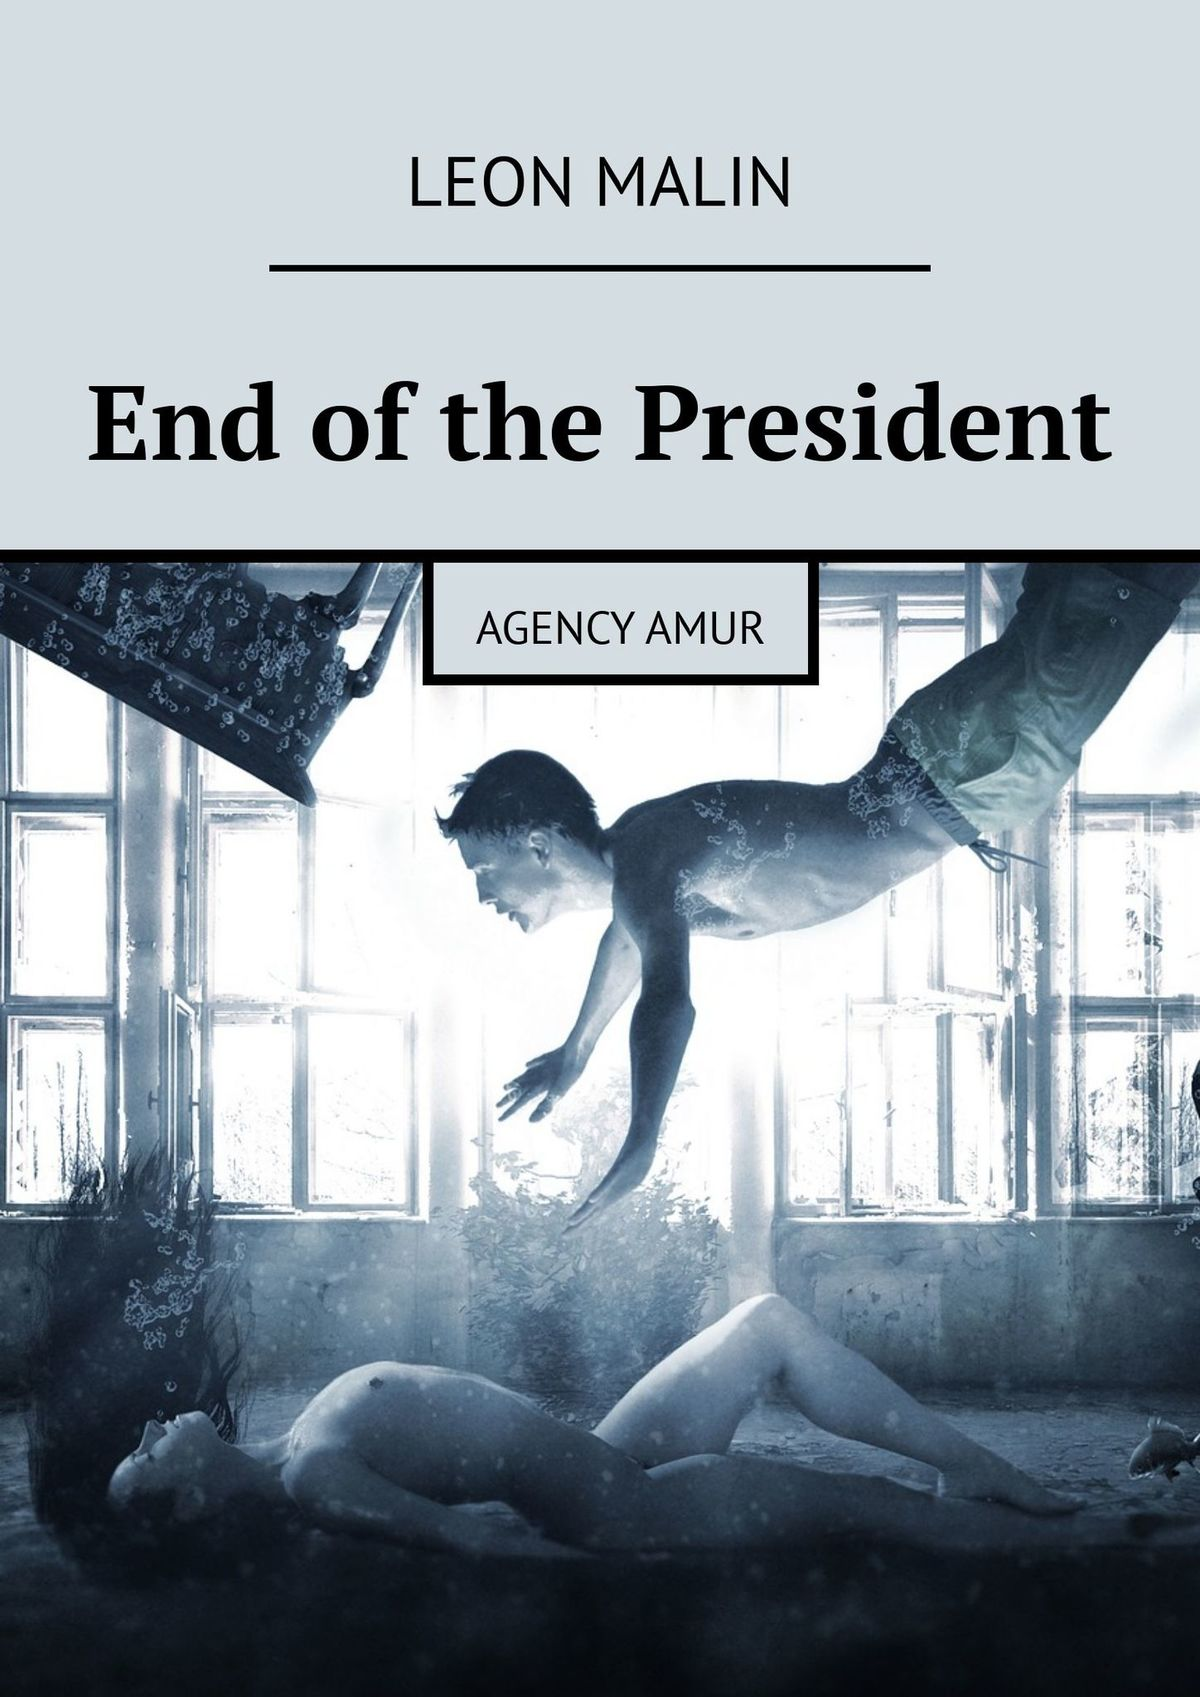 End of the President. Agency Amur